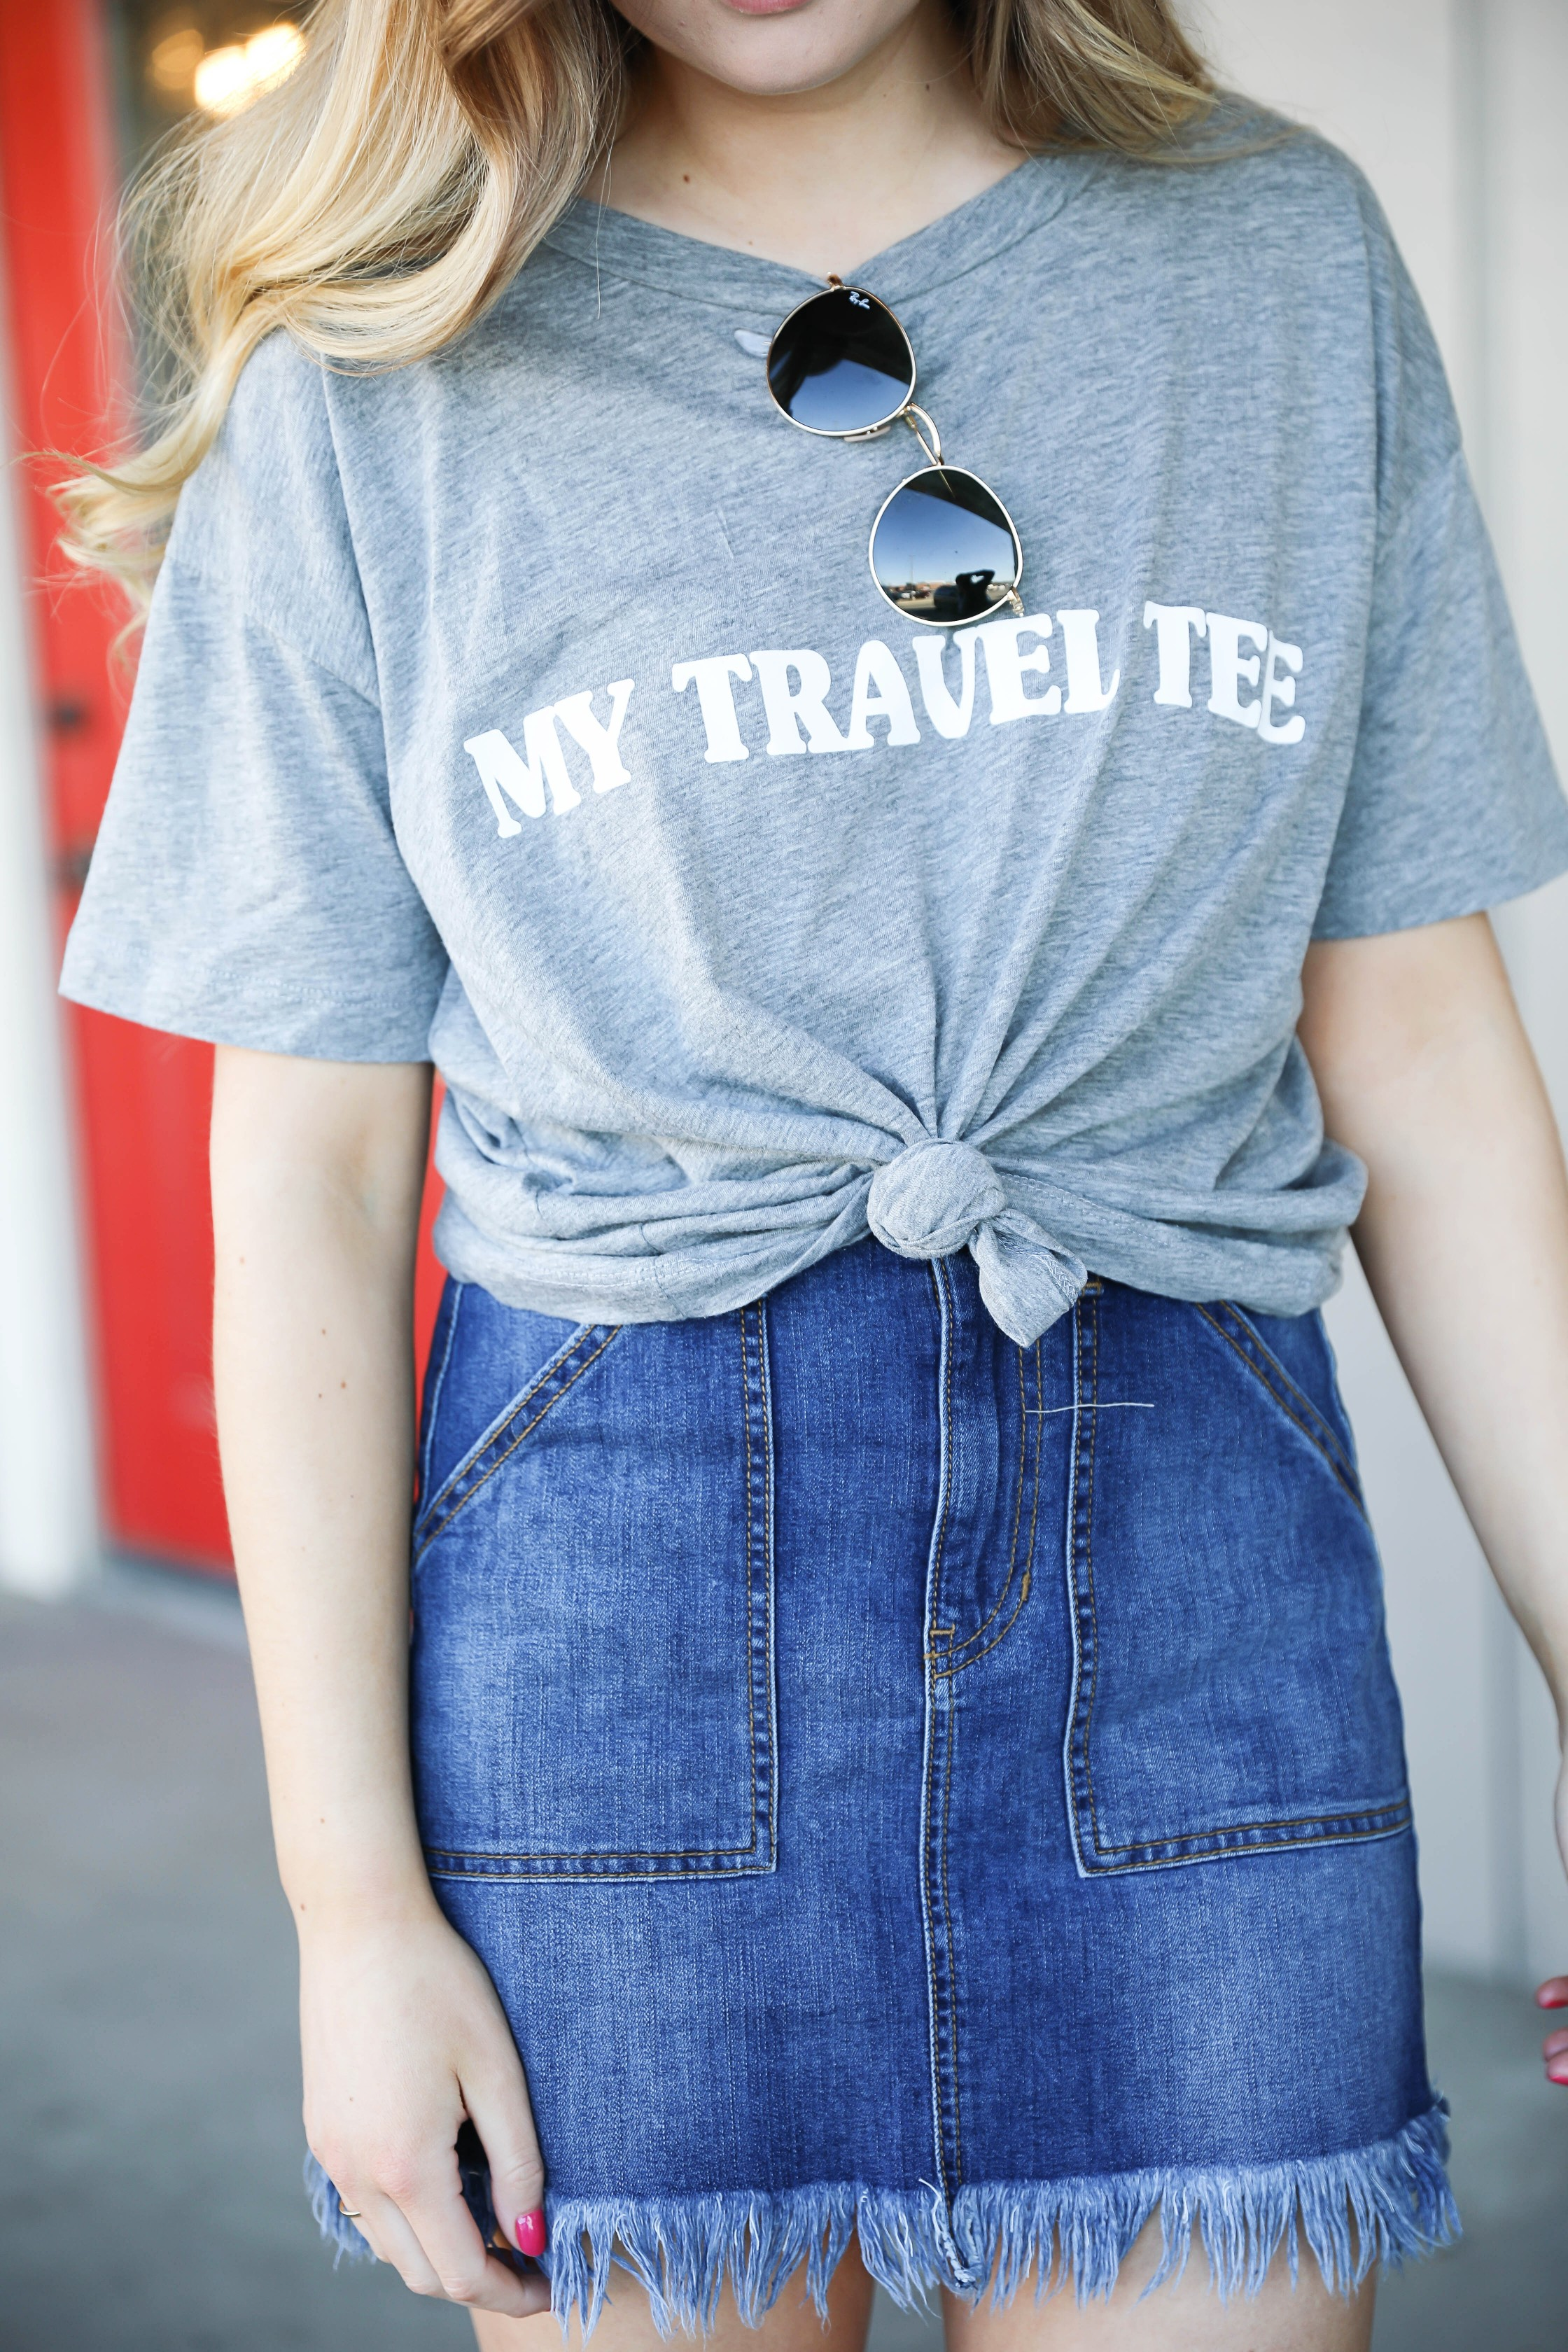 Show Me your mumu grey travel tee! This is such a cute travel tshirt! Not to mention, this jean skirt is adorable! I love how the jean skirt is frayed! Details on fashion blog daily dose of charm by lauren lindmark